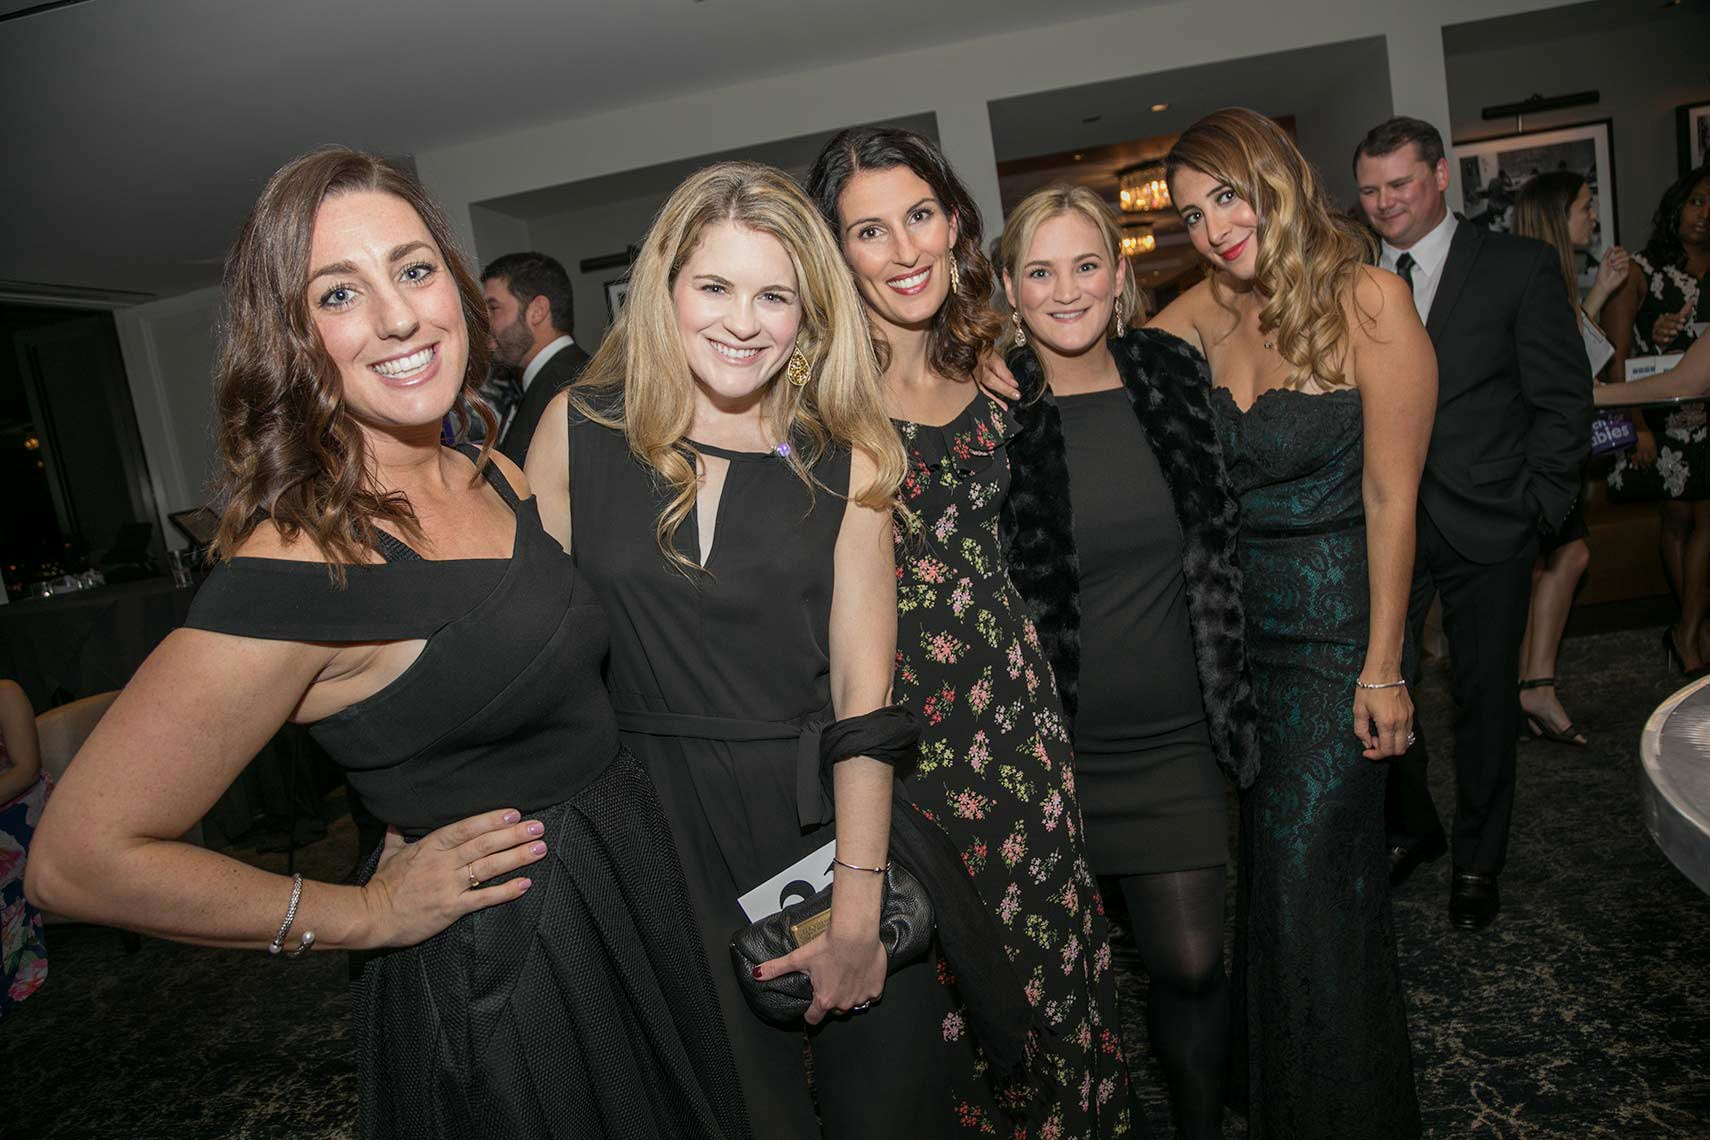 016-A-casual-group-photo-of-some-young-women-at-the-Black-Ties-for-Babies-fundraiser-in-Boston